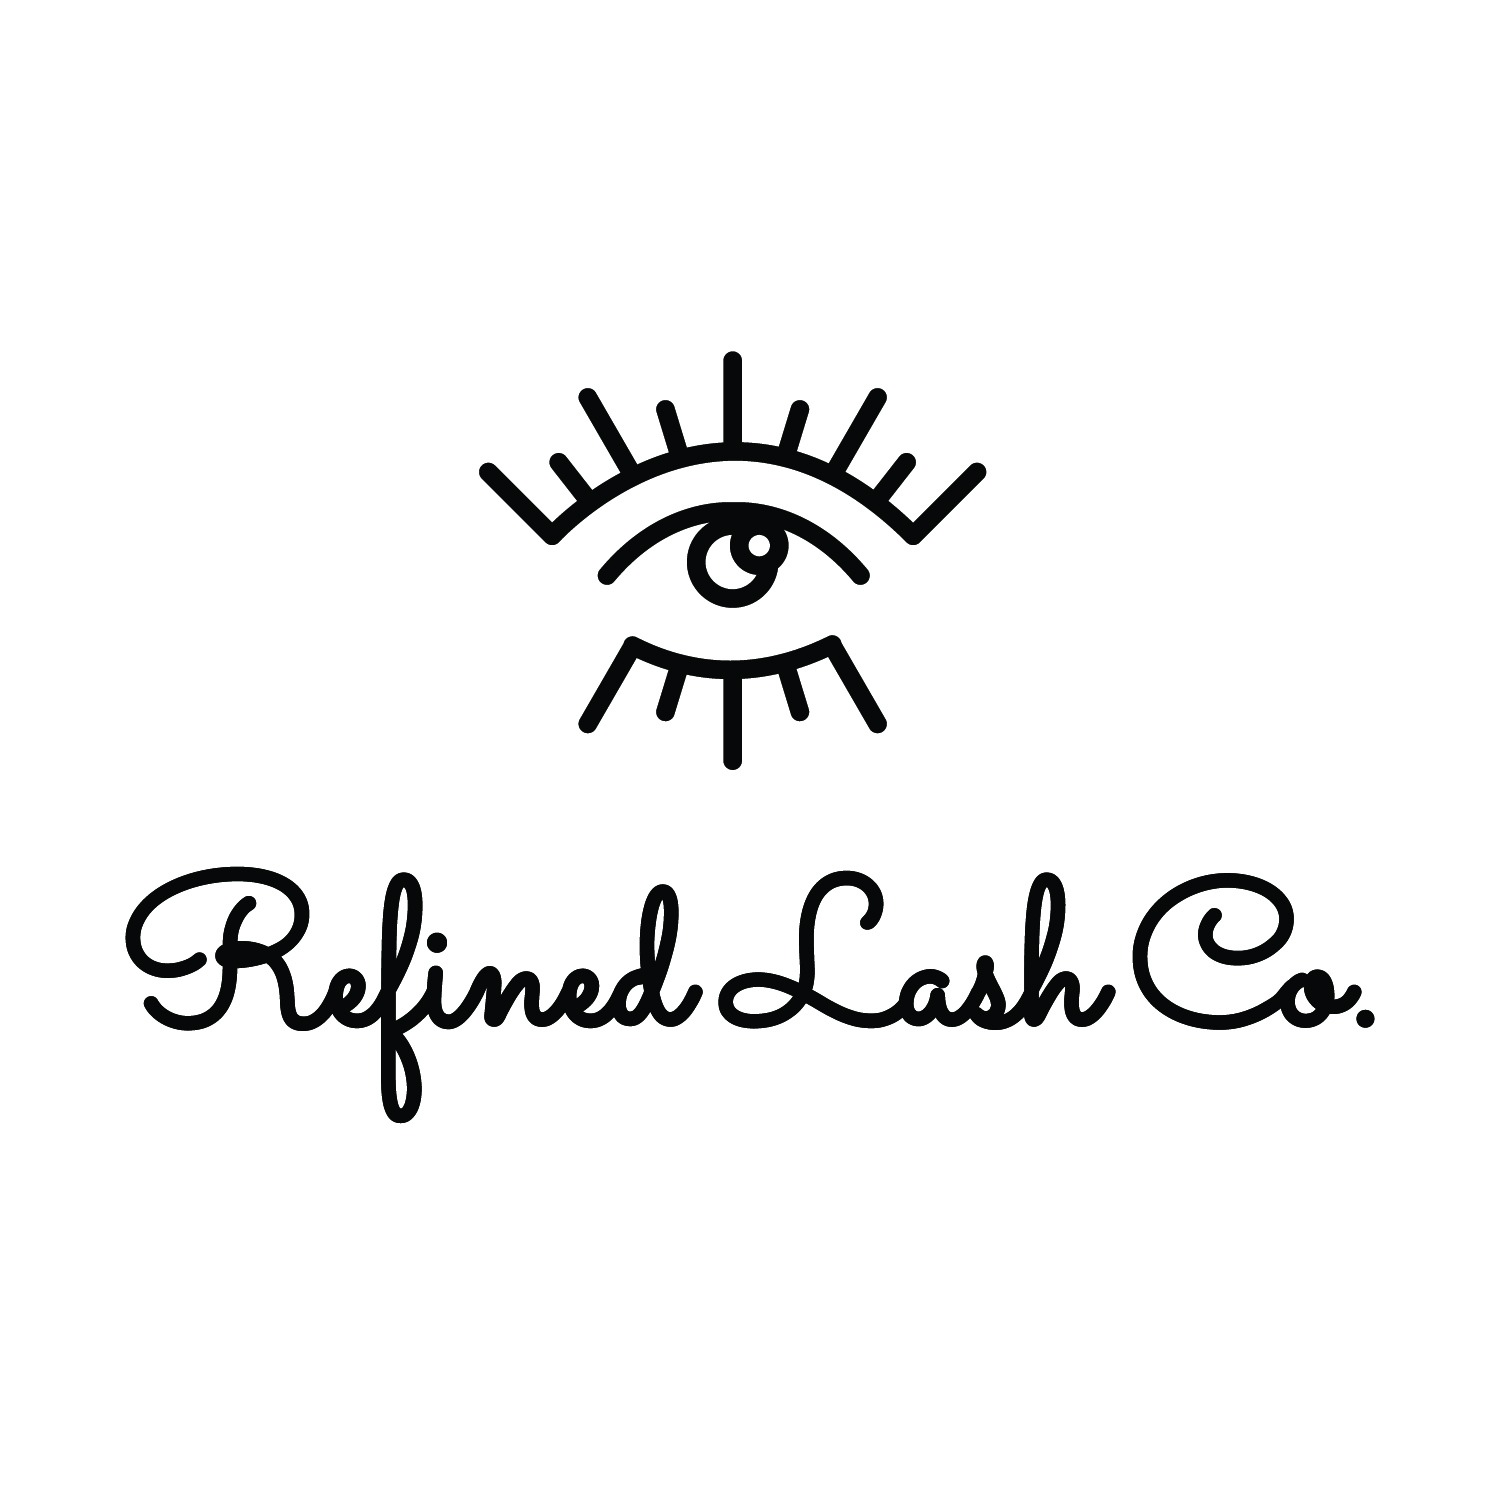 Refined Lash Co